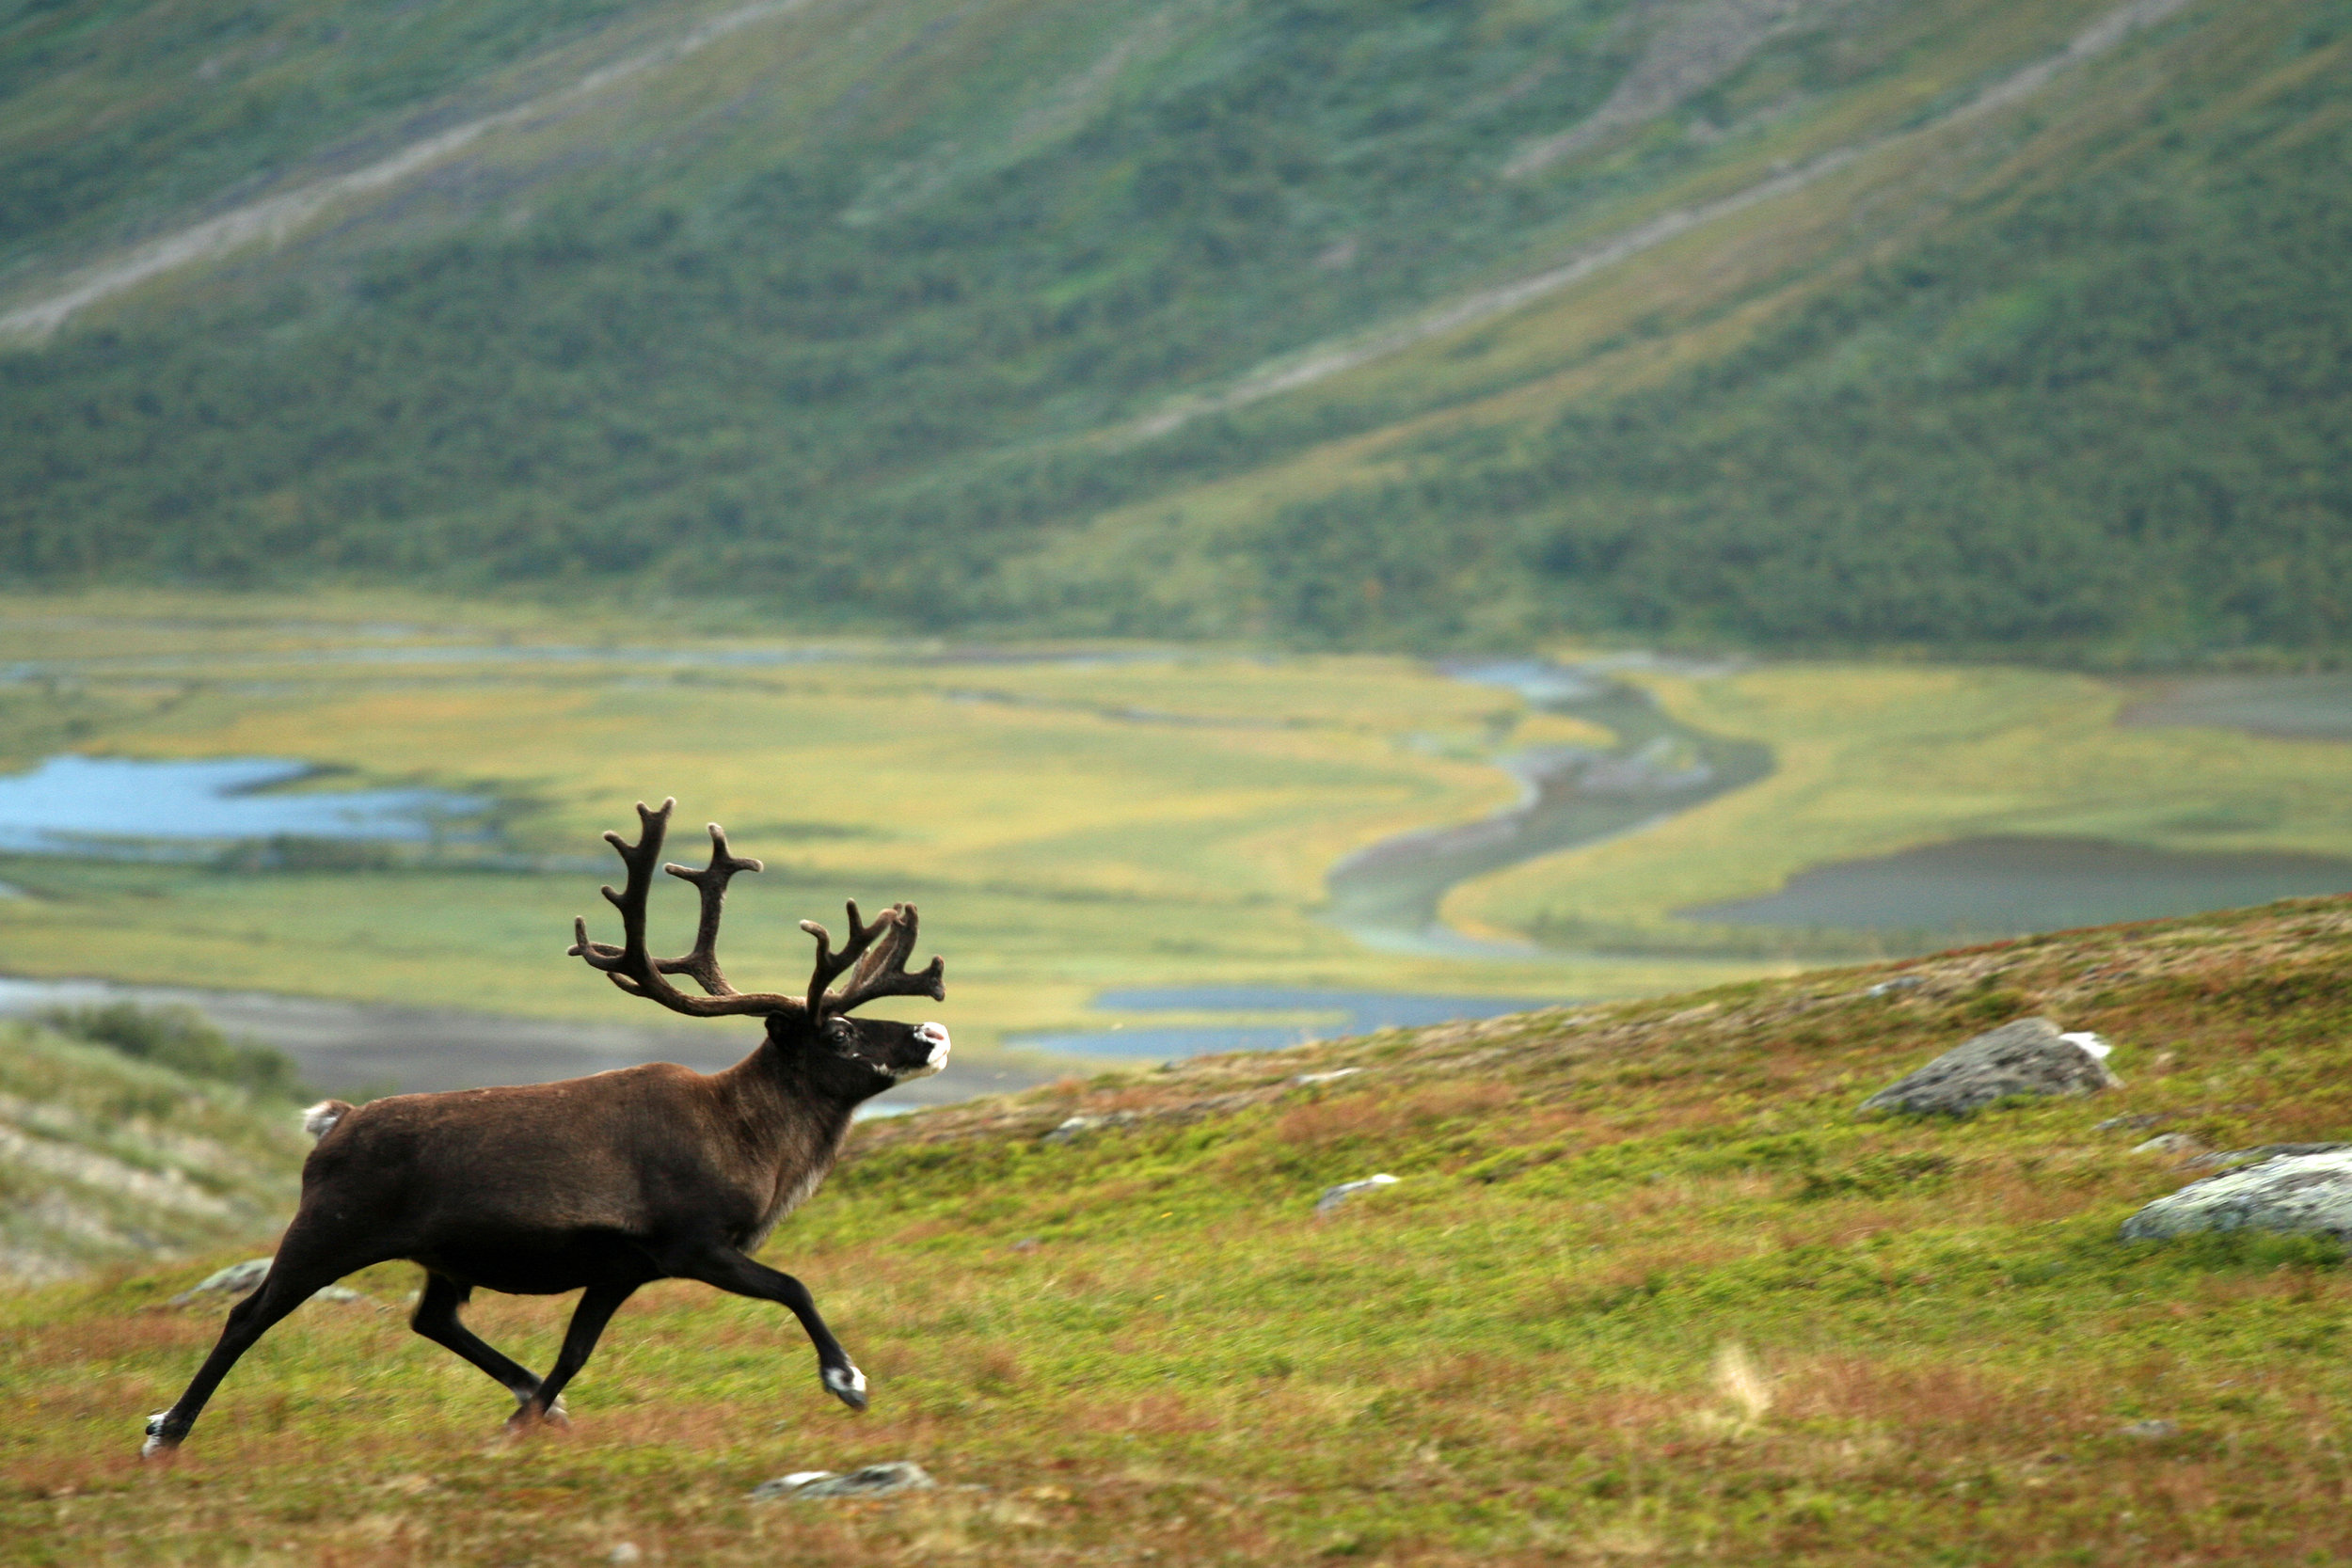 Reindeer in Sarek. Photo: Matti Holmgren